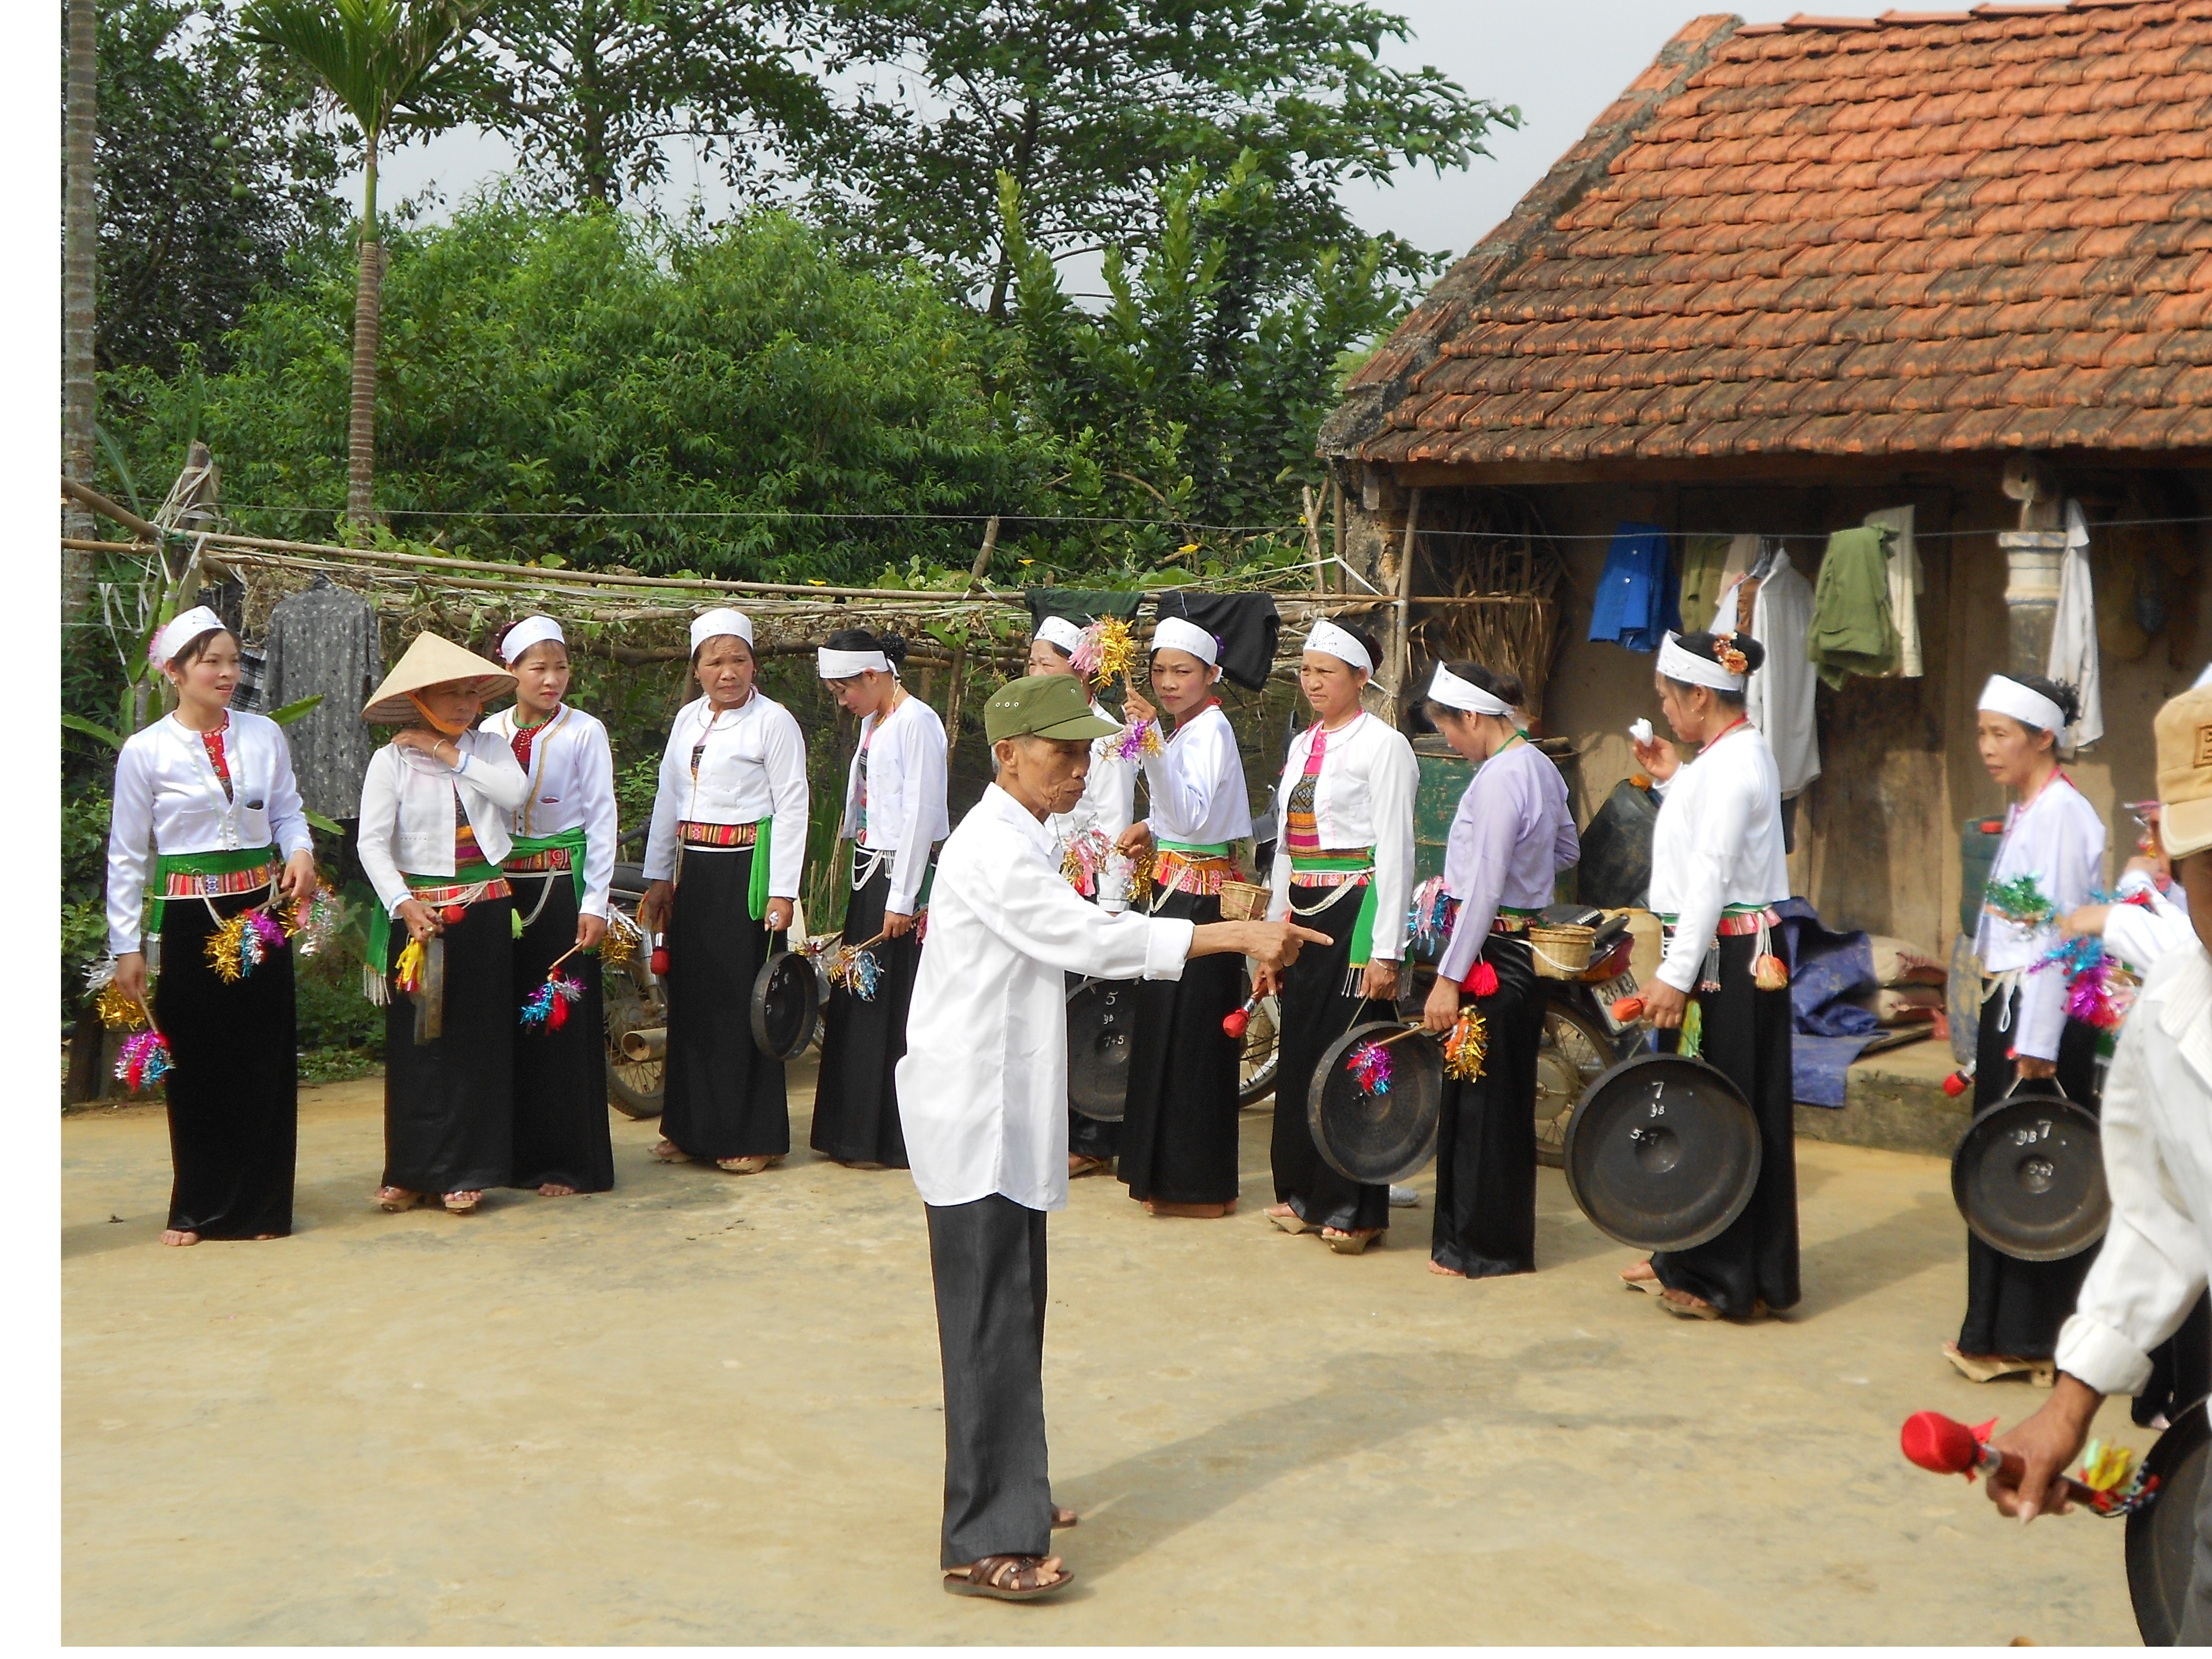 Muong culture on show in Hoa Binh